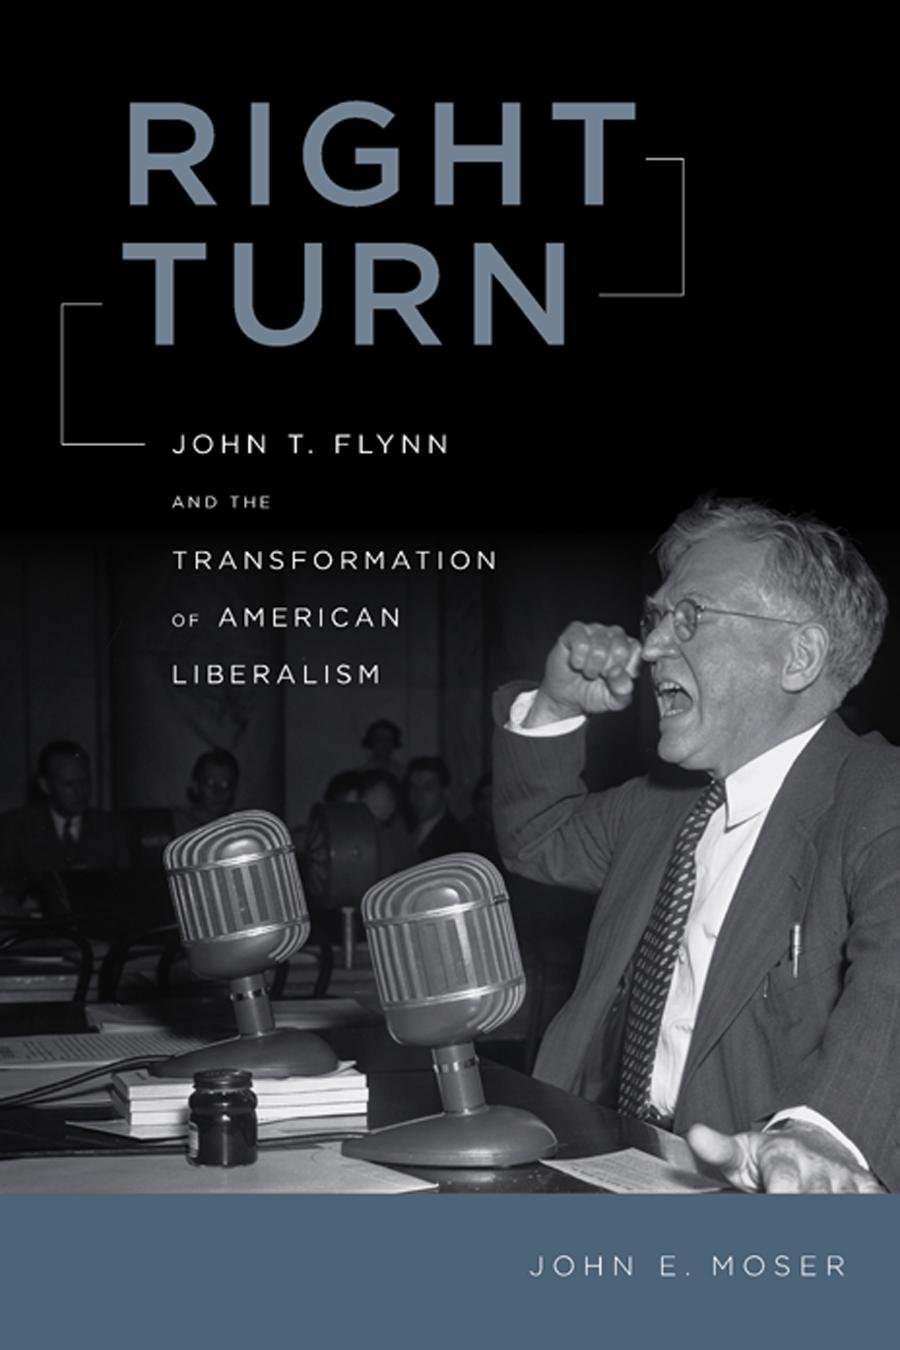 right-turn-john-t-flynn-and-the-transformation-of-american-liberalism